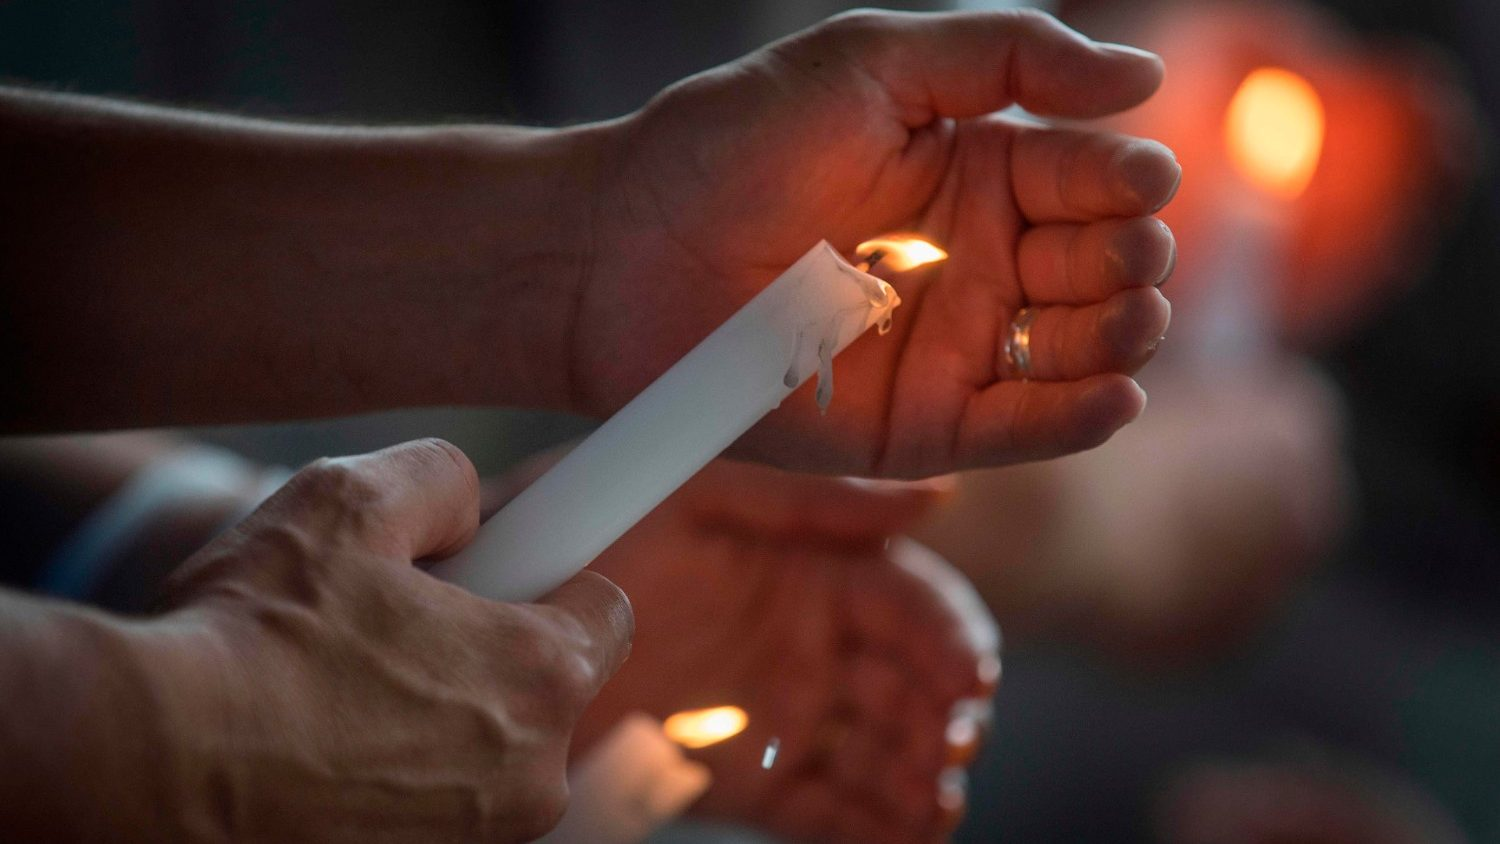 US Prayer vigil for life to take place in virtual format - Vatican News